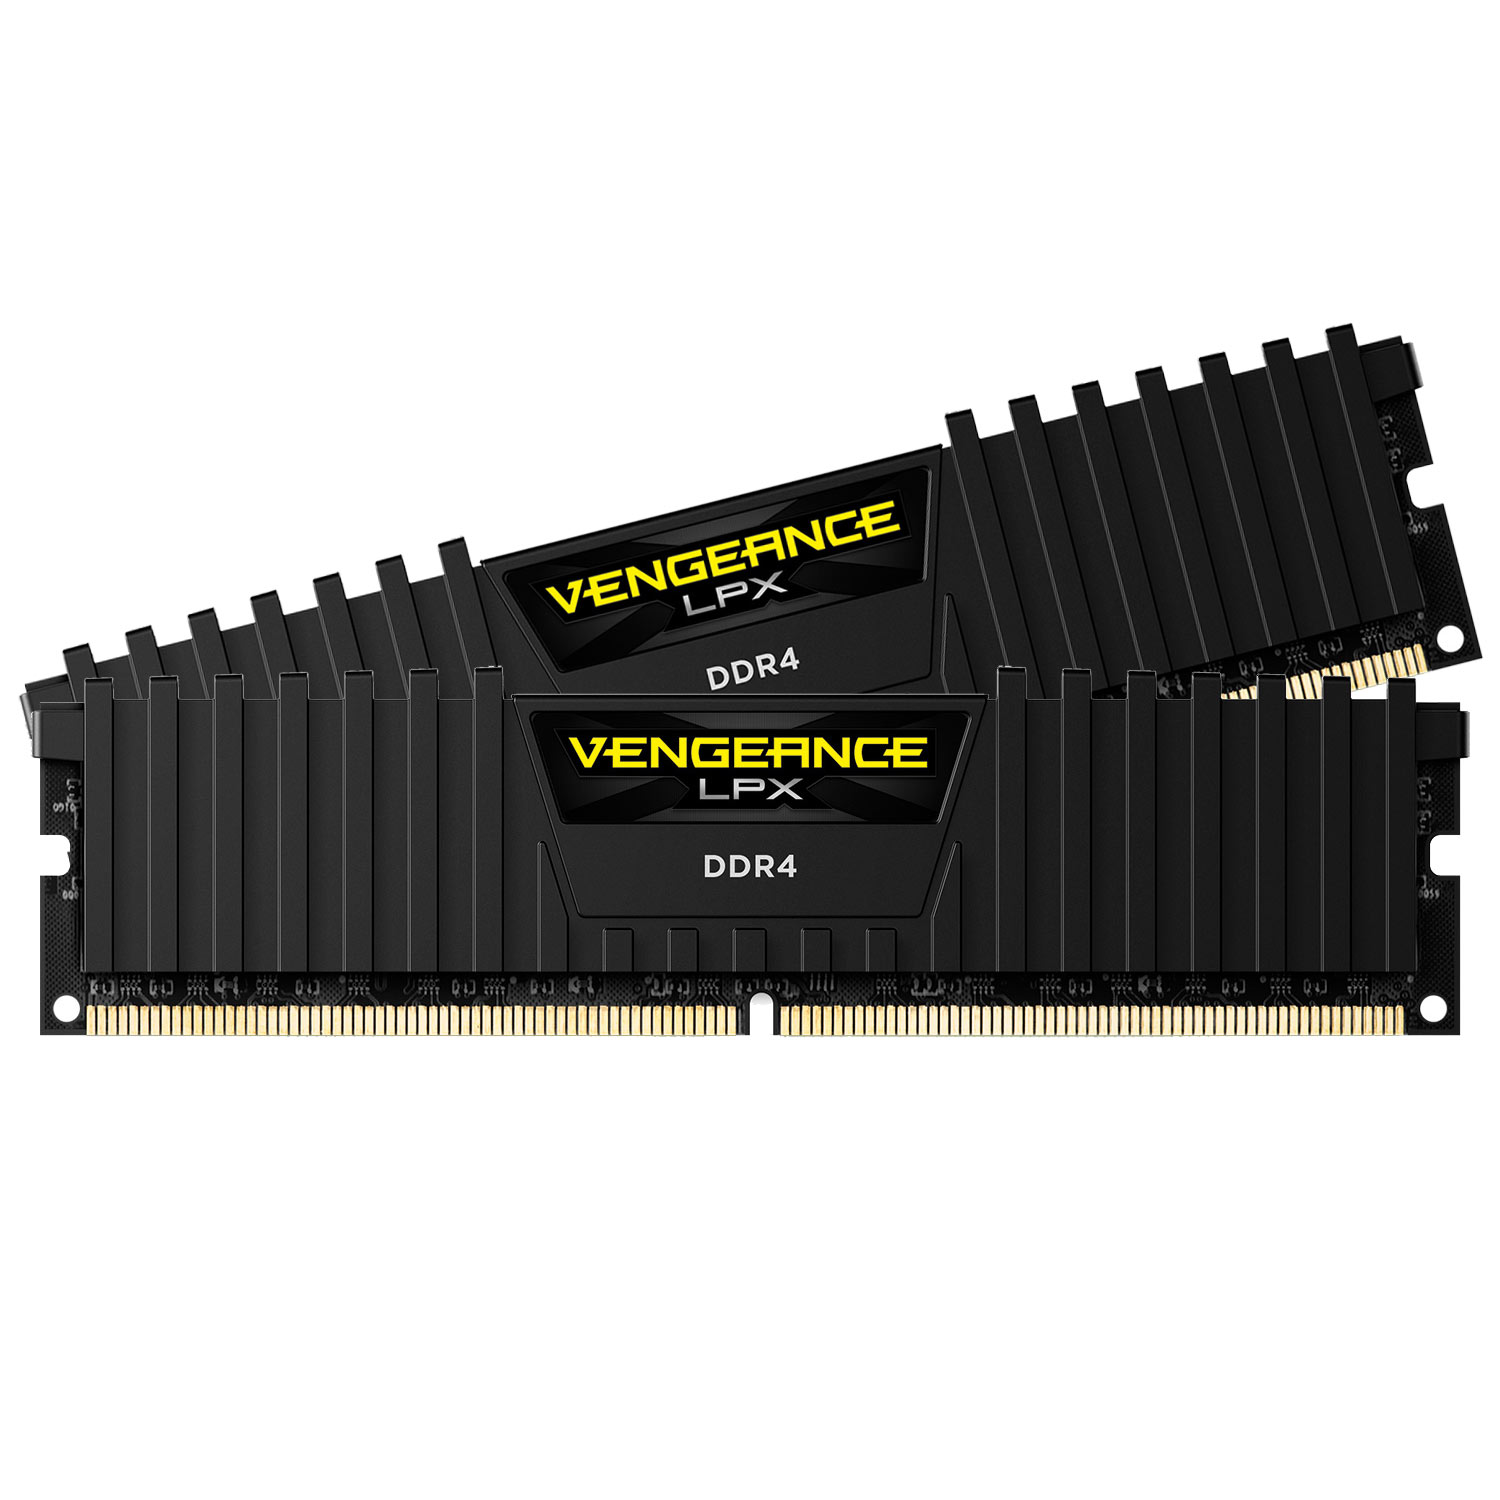 Ram Corsair DDR4 (2 X 4GB) 8G bus 2133 - CMK8GX4M2